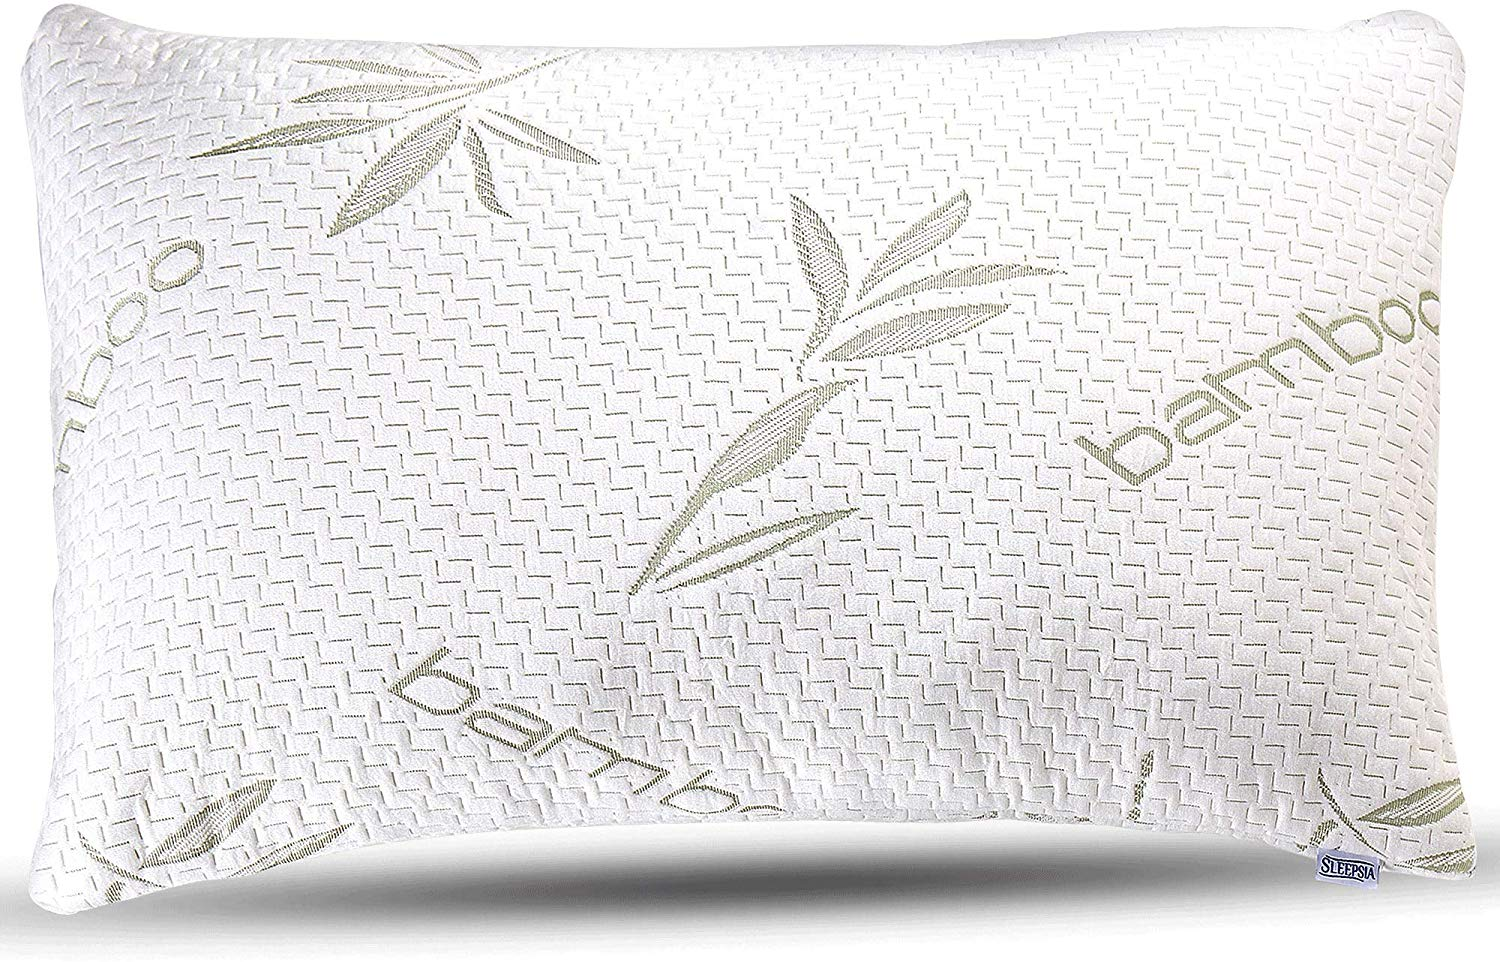 sleepsia bamboo premium memory foam pillows for sleeping with washable pillow case standard